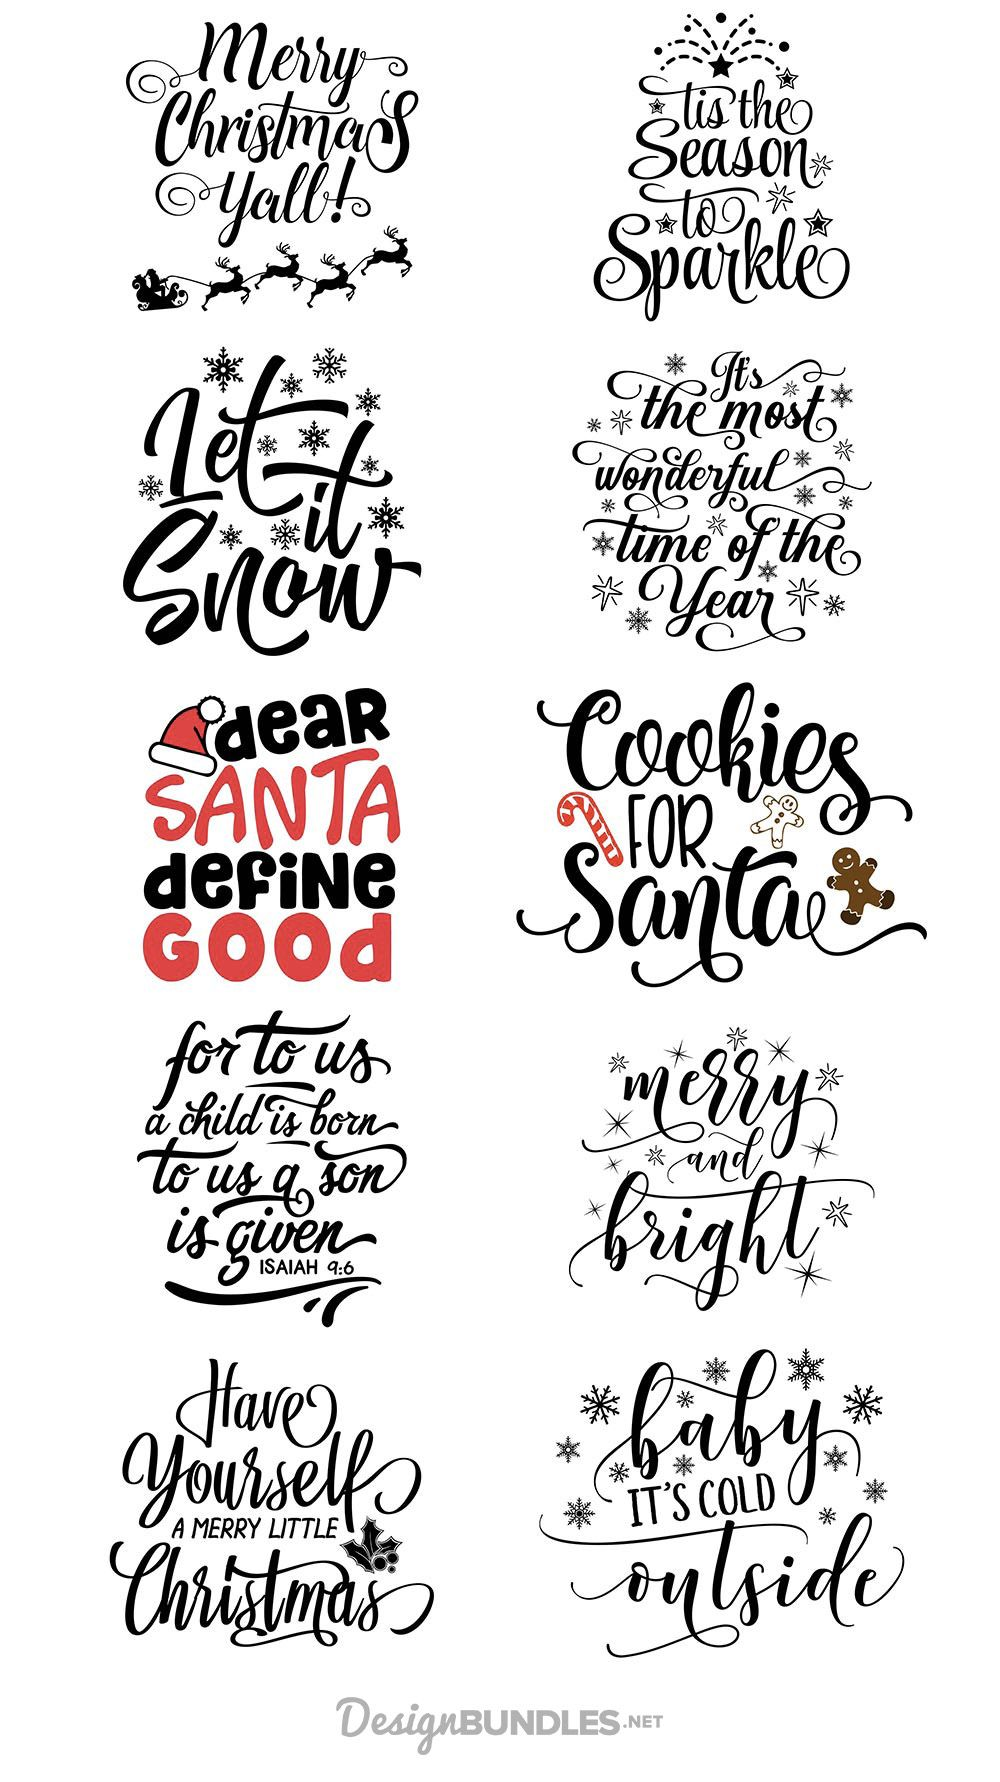 Freebie Roundup #9 | Printables - Holidays | Pinterest | Christmas ...